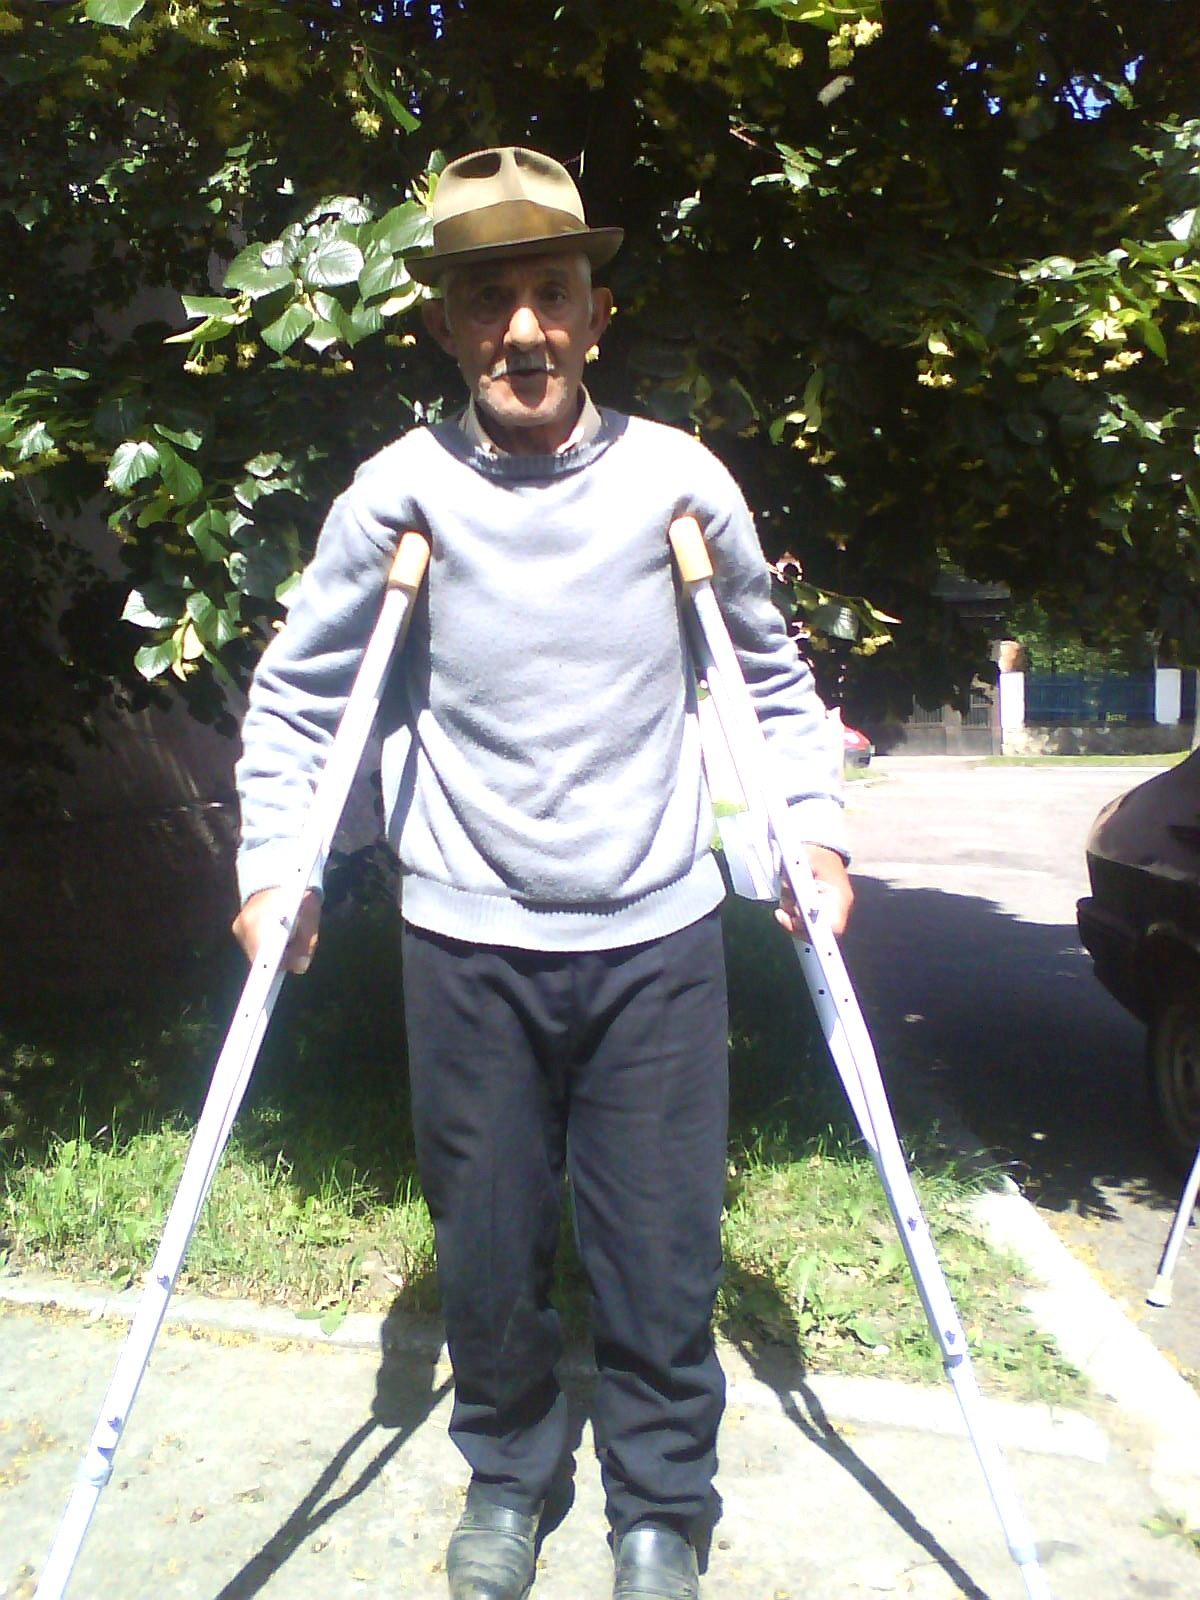 He thanks you for his adjustable crutches.